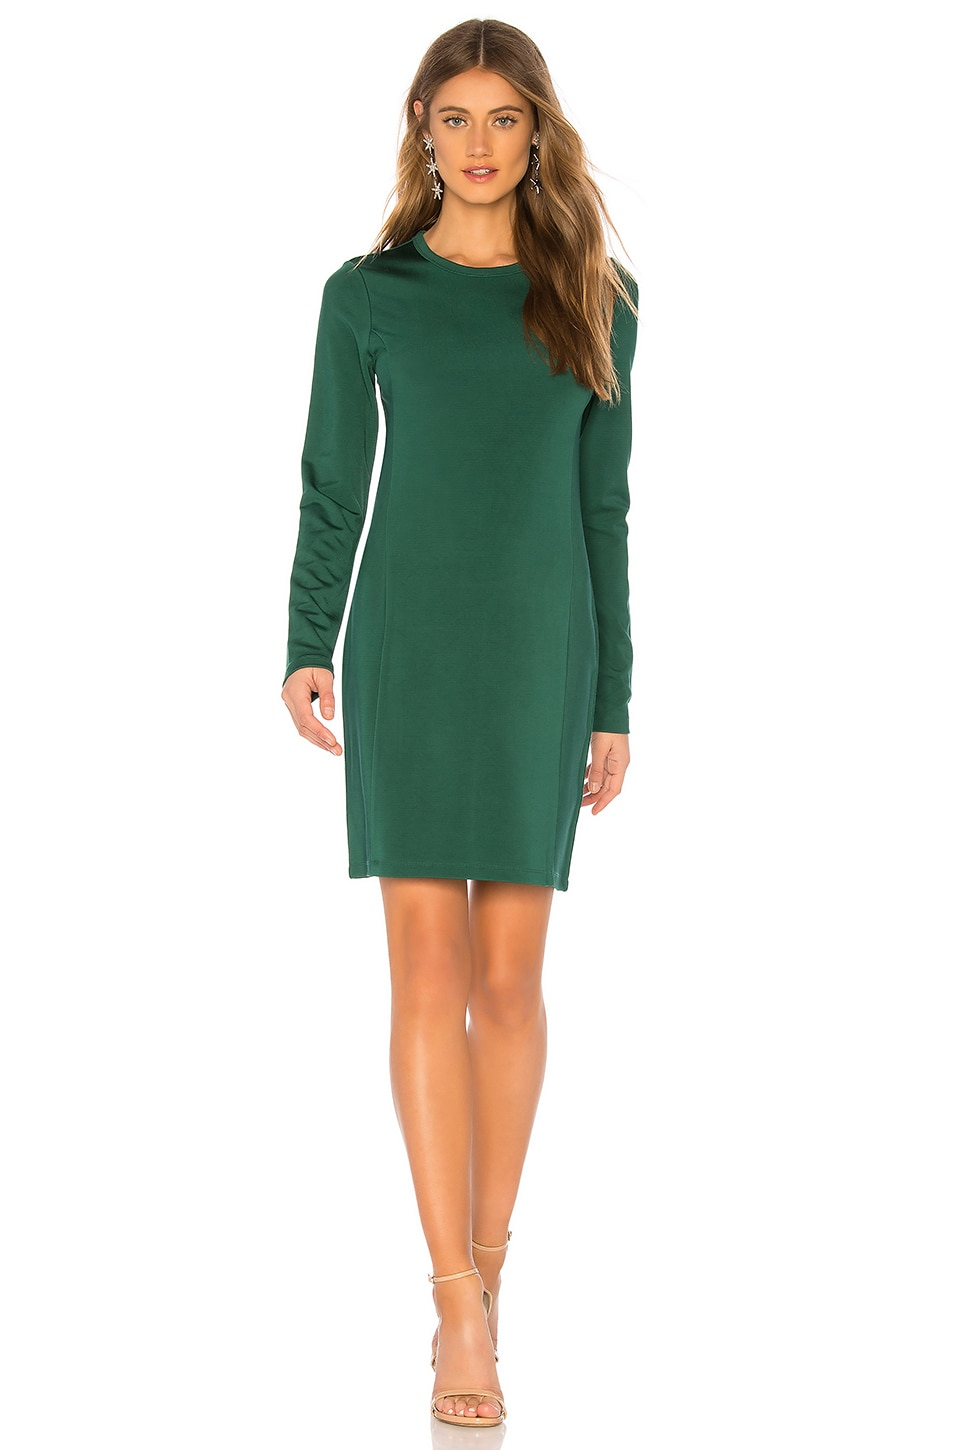 Elizabeth and James Starr Mini Dress in Bottle Green